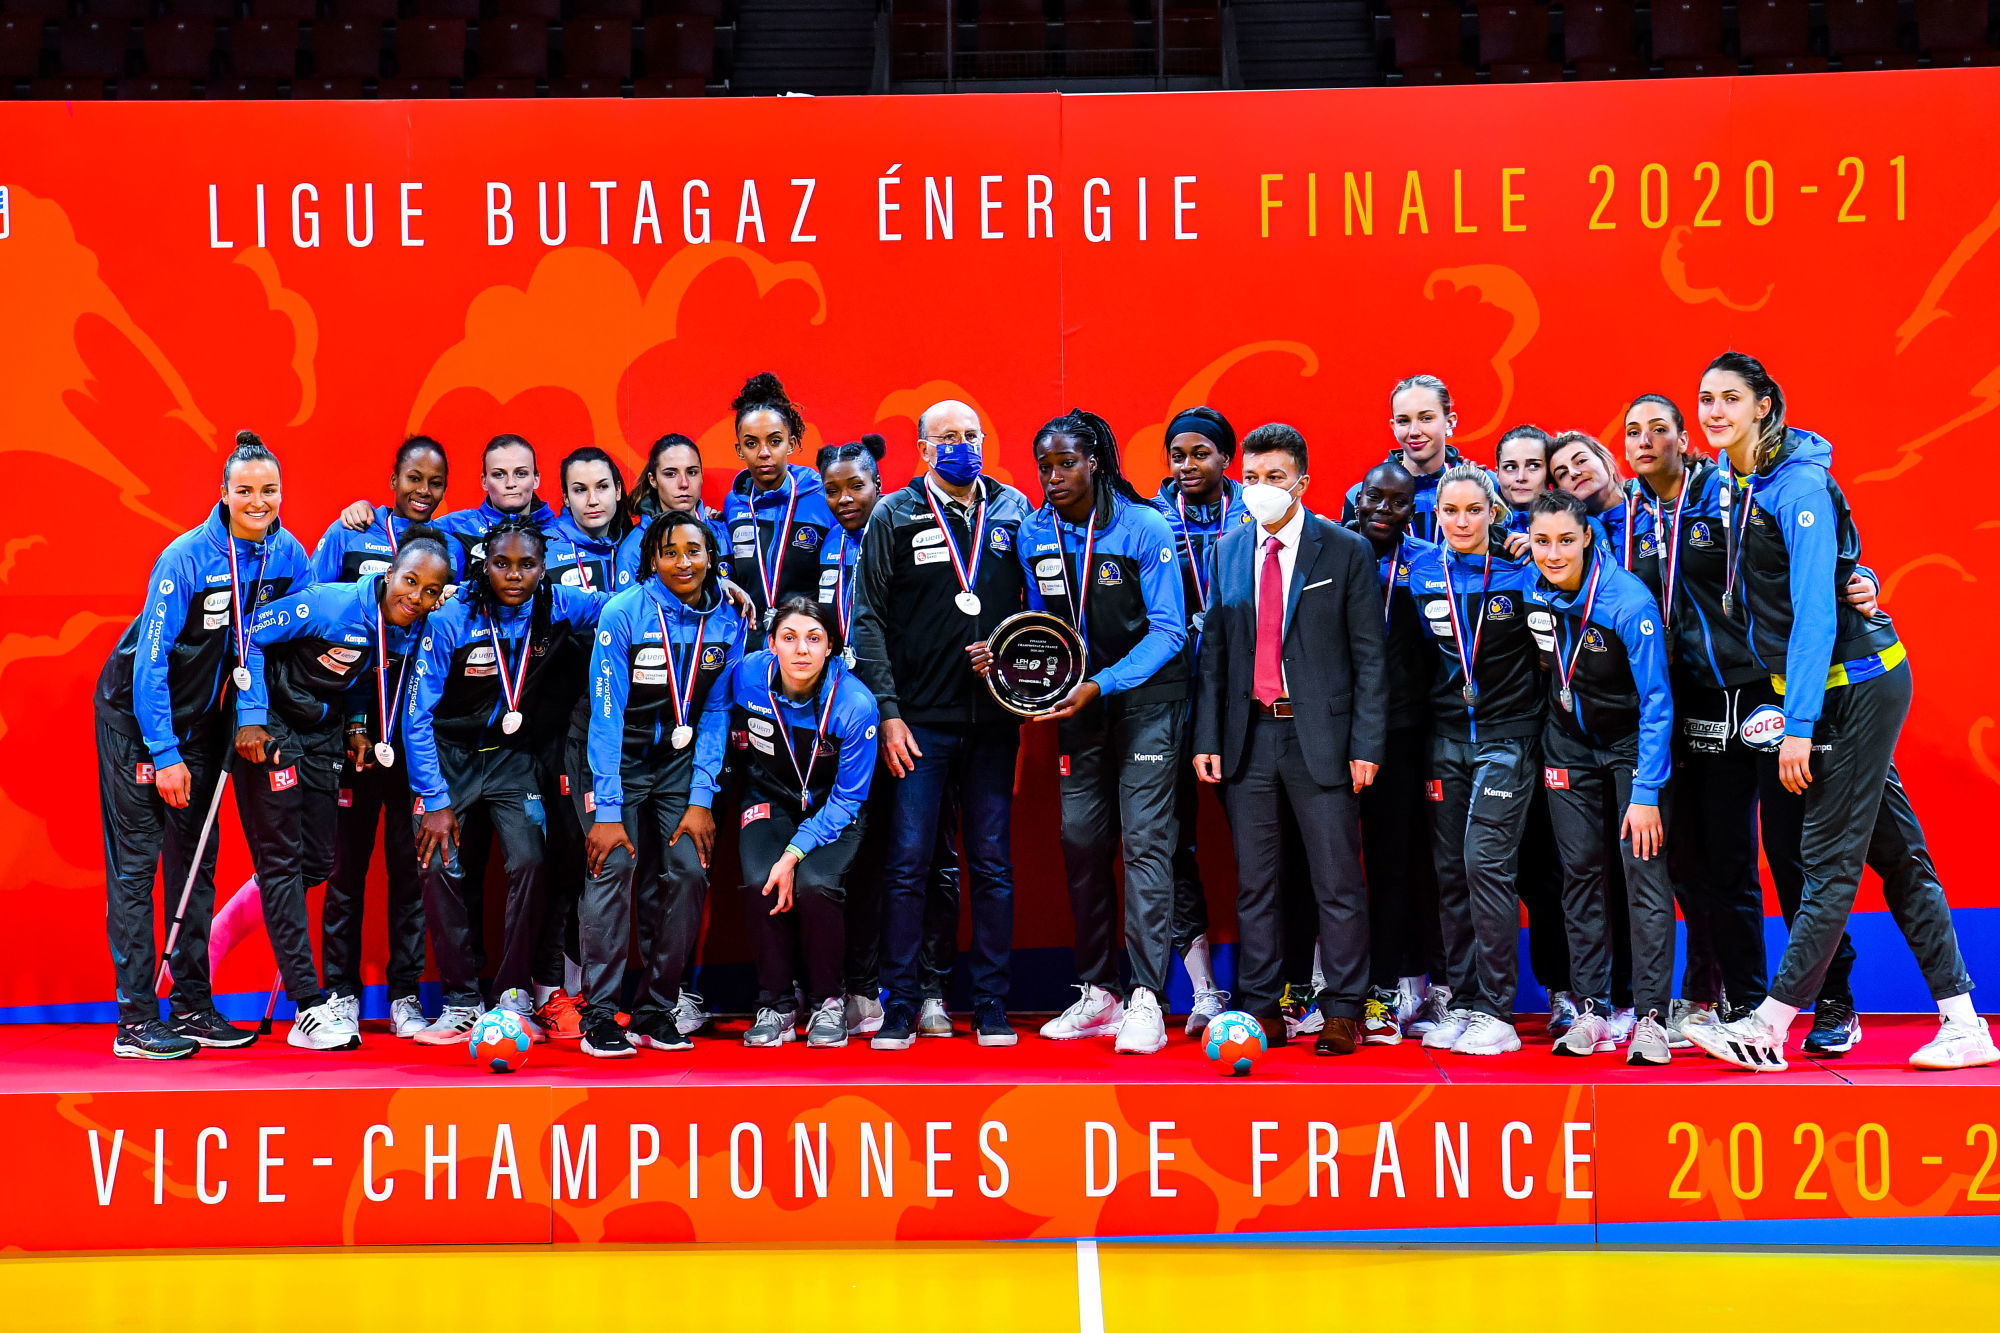 Team of Metz dejected on the podium after the women's Ligue Butagaz Energie final match between Brest and Metz at Brest Arena on May 23, 2021 in Brest, France. (Photo by Baptiste Fernandez/Icon Sport) - Brest (France)